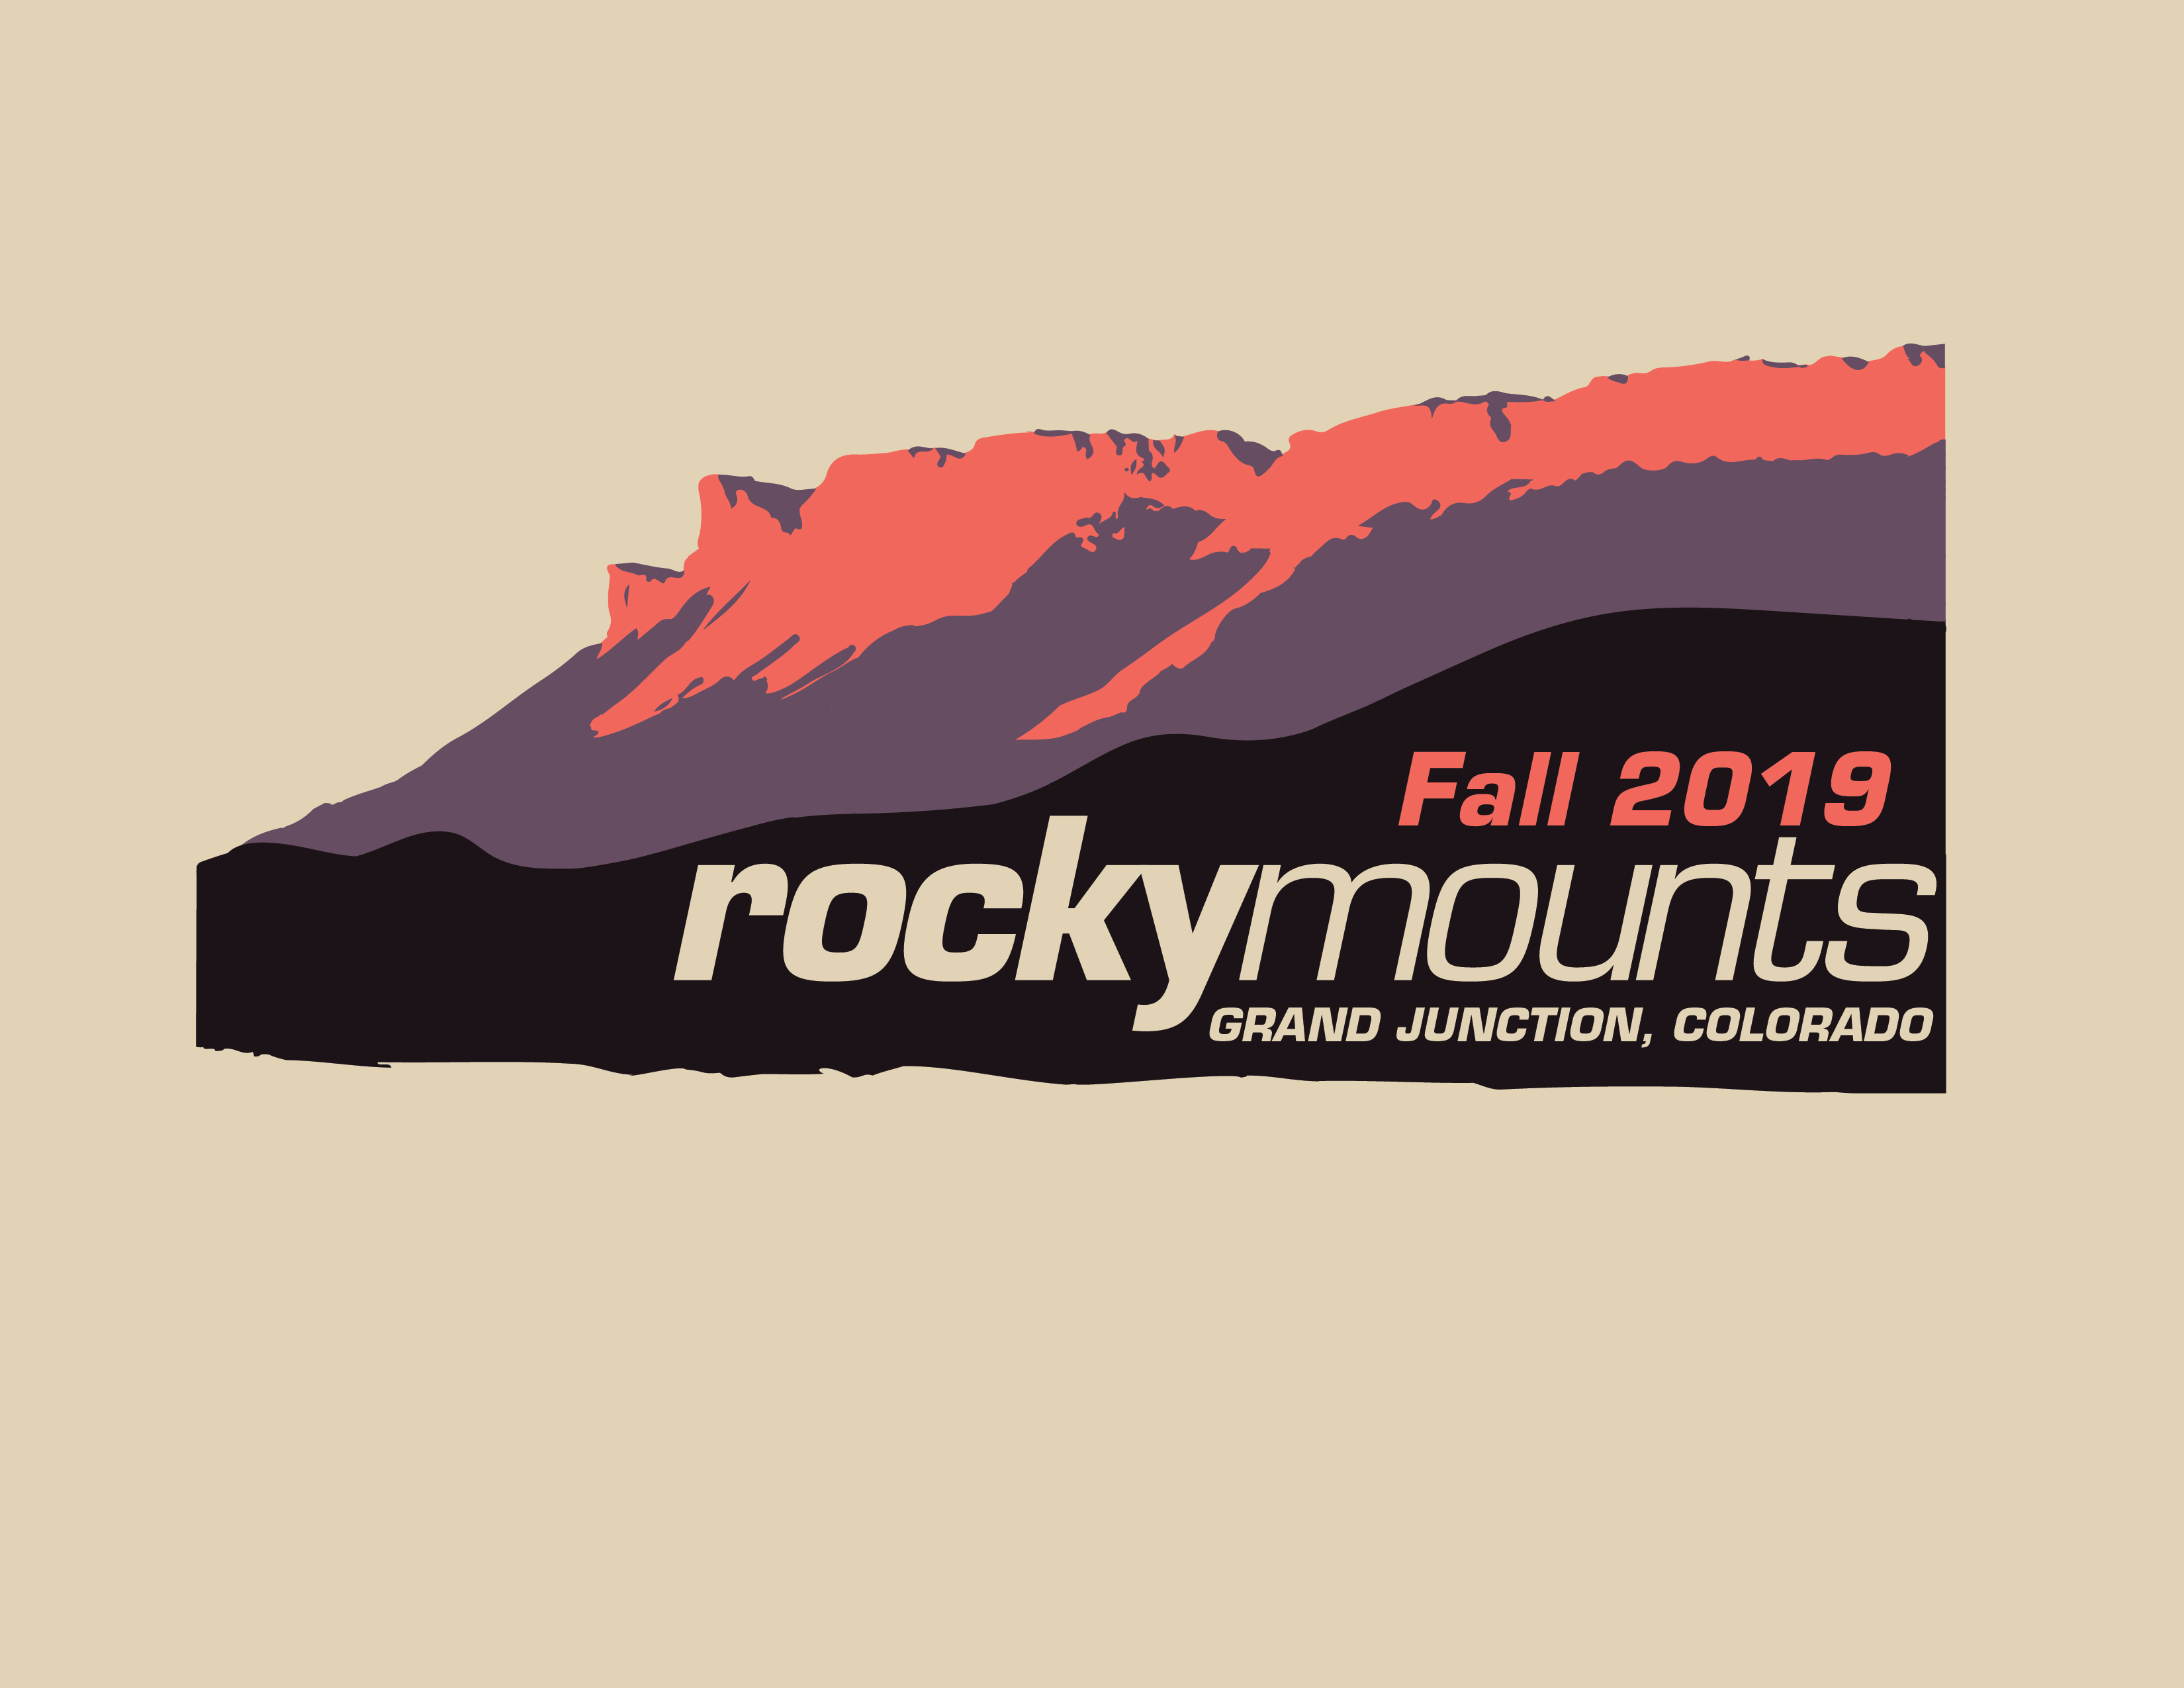 RockyMounts will move to Grand Junction Colorado in fall 2019